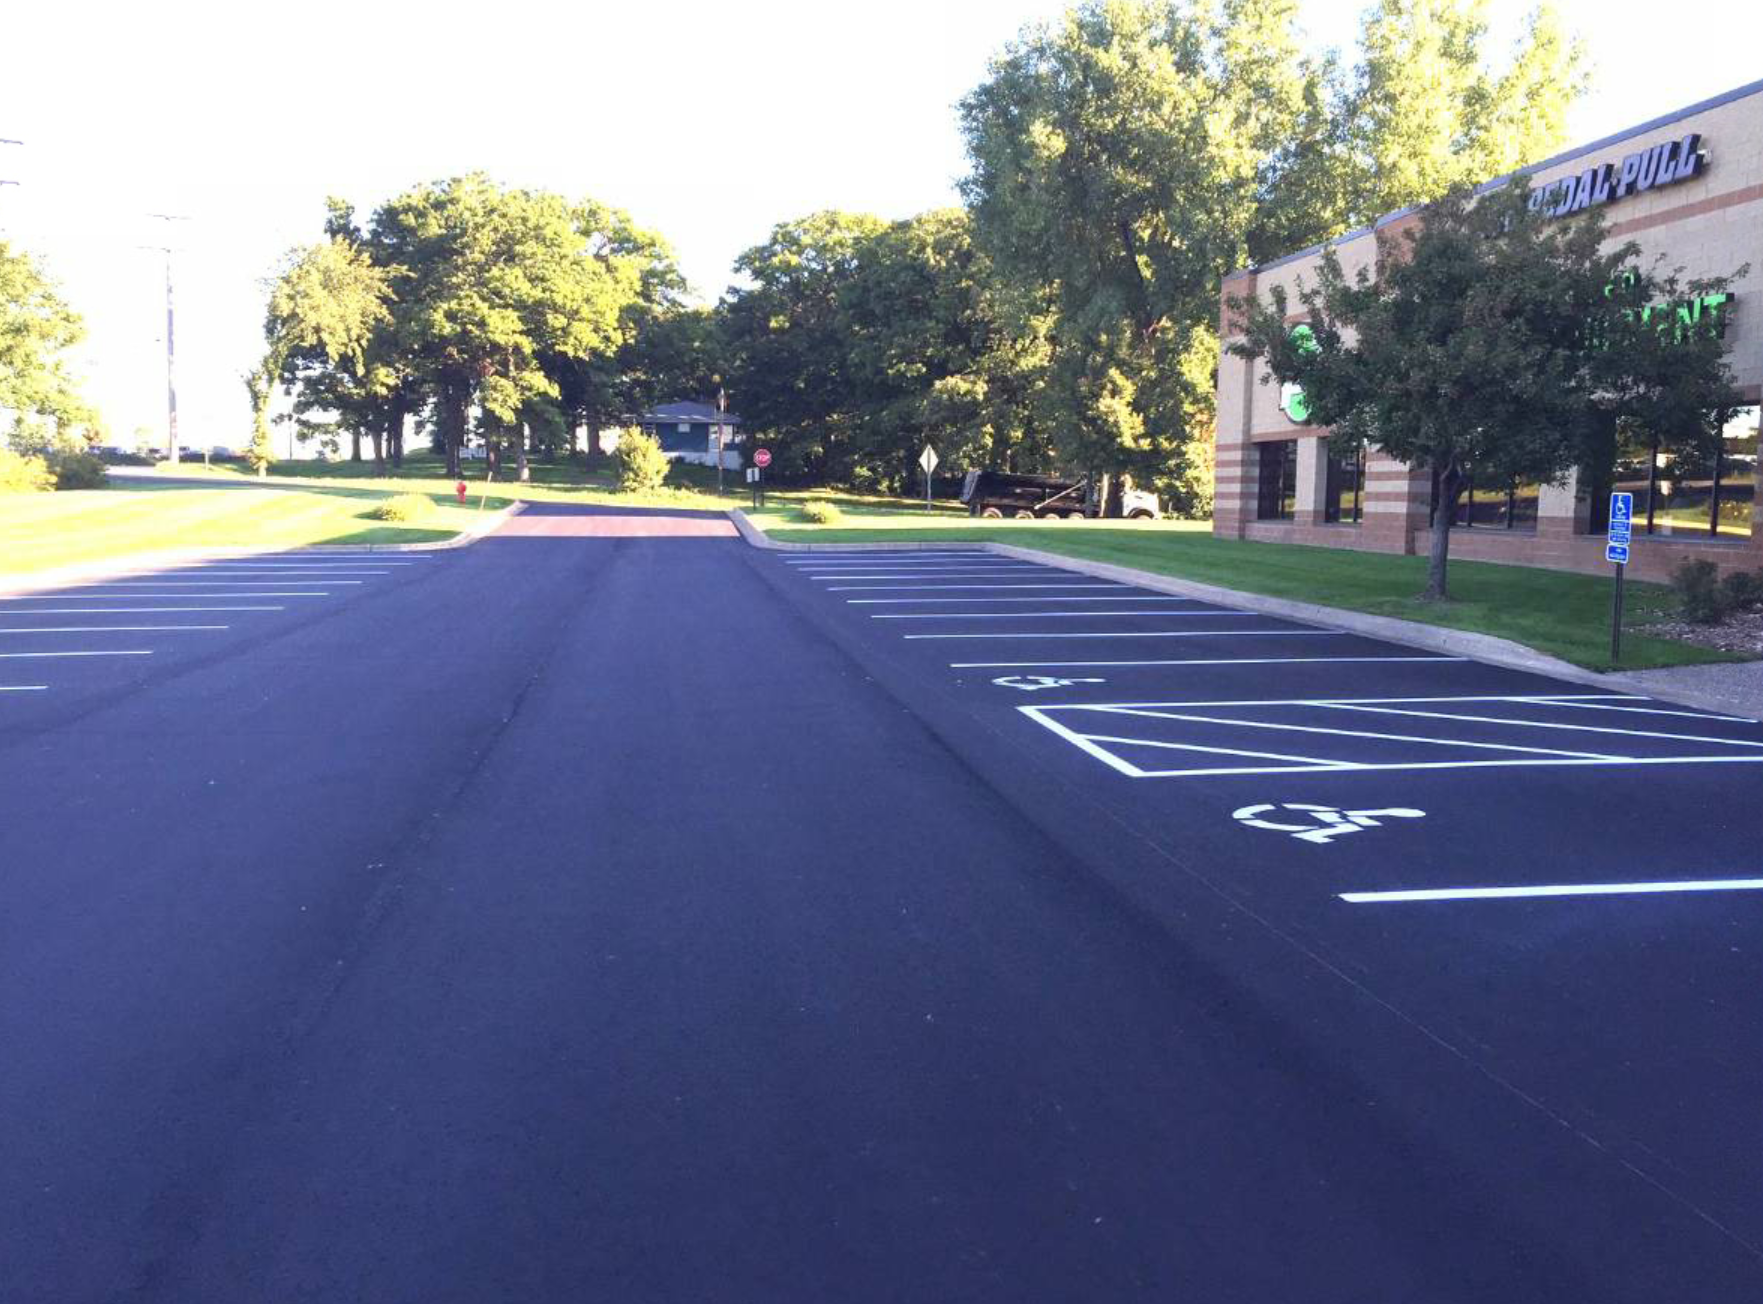 Some parking lots are good candidates for a simple sealcoat and restripe to freshen their appearance and seal out water.